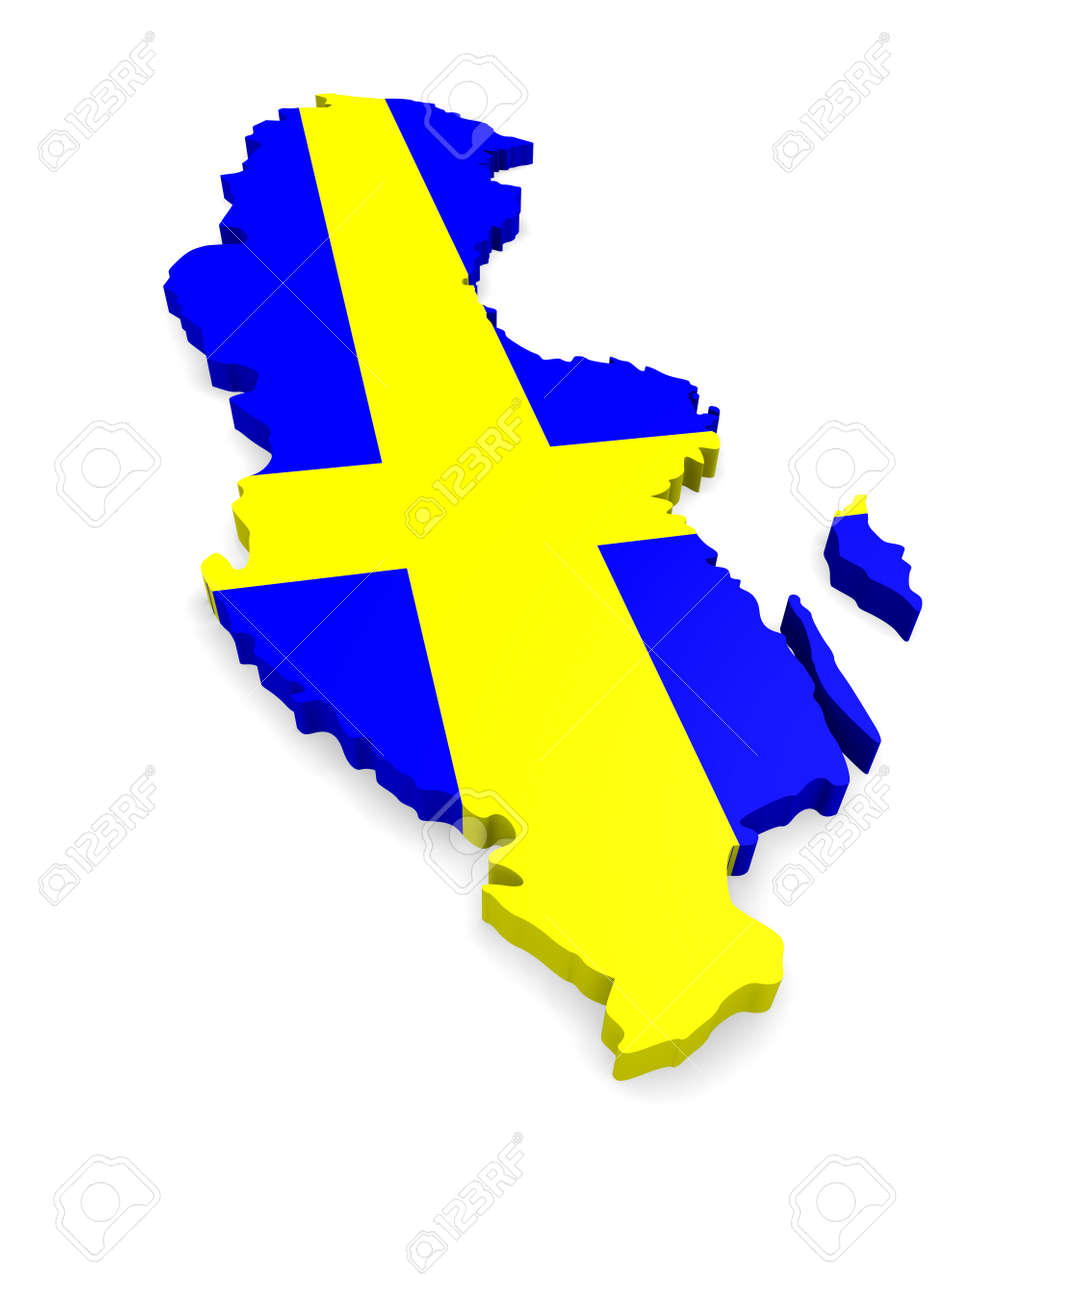 D Map Of Sweden On A White Background Stock Photo Picture And - Sweden map 3d